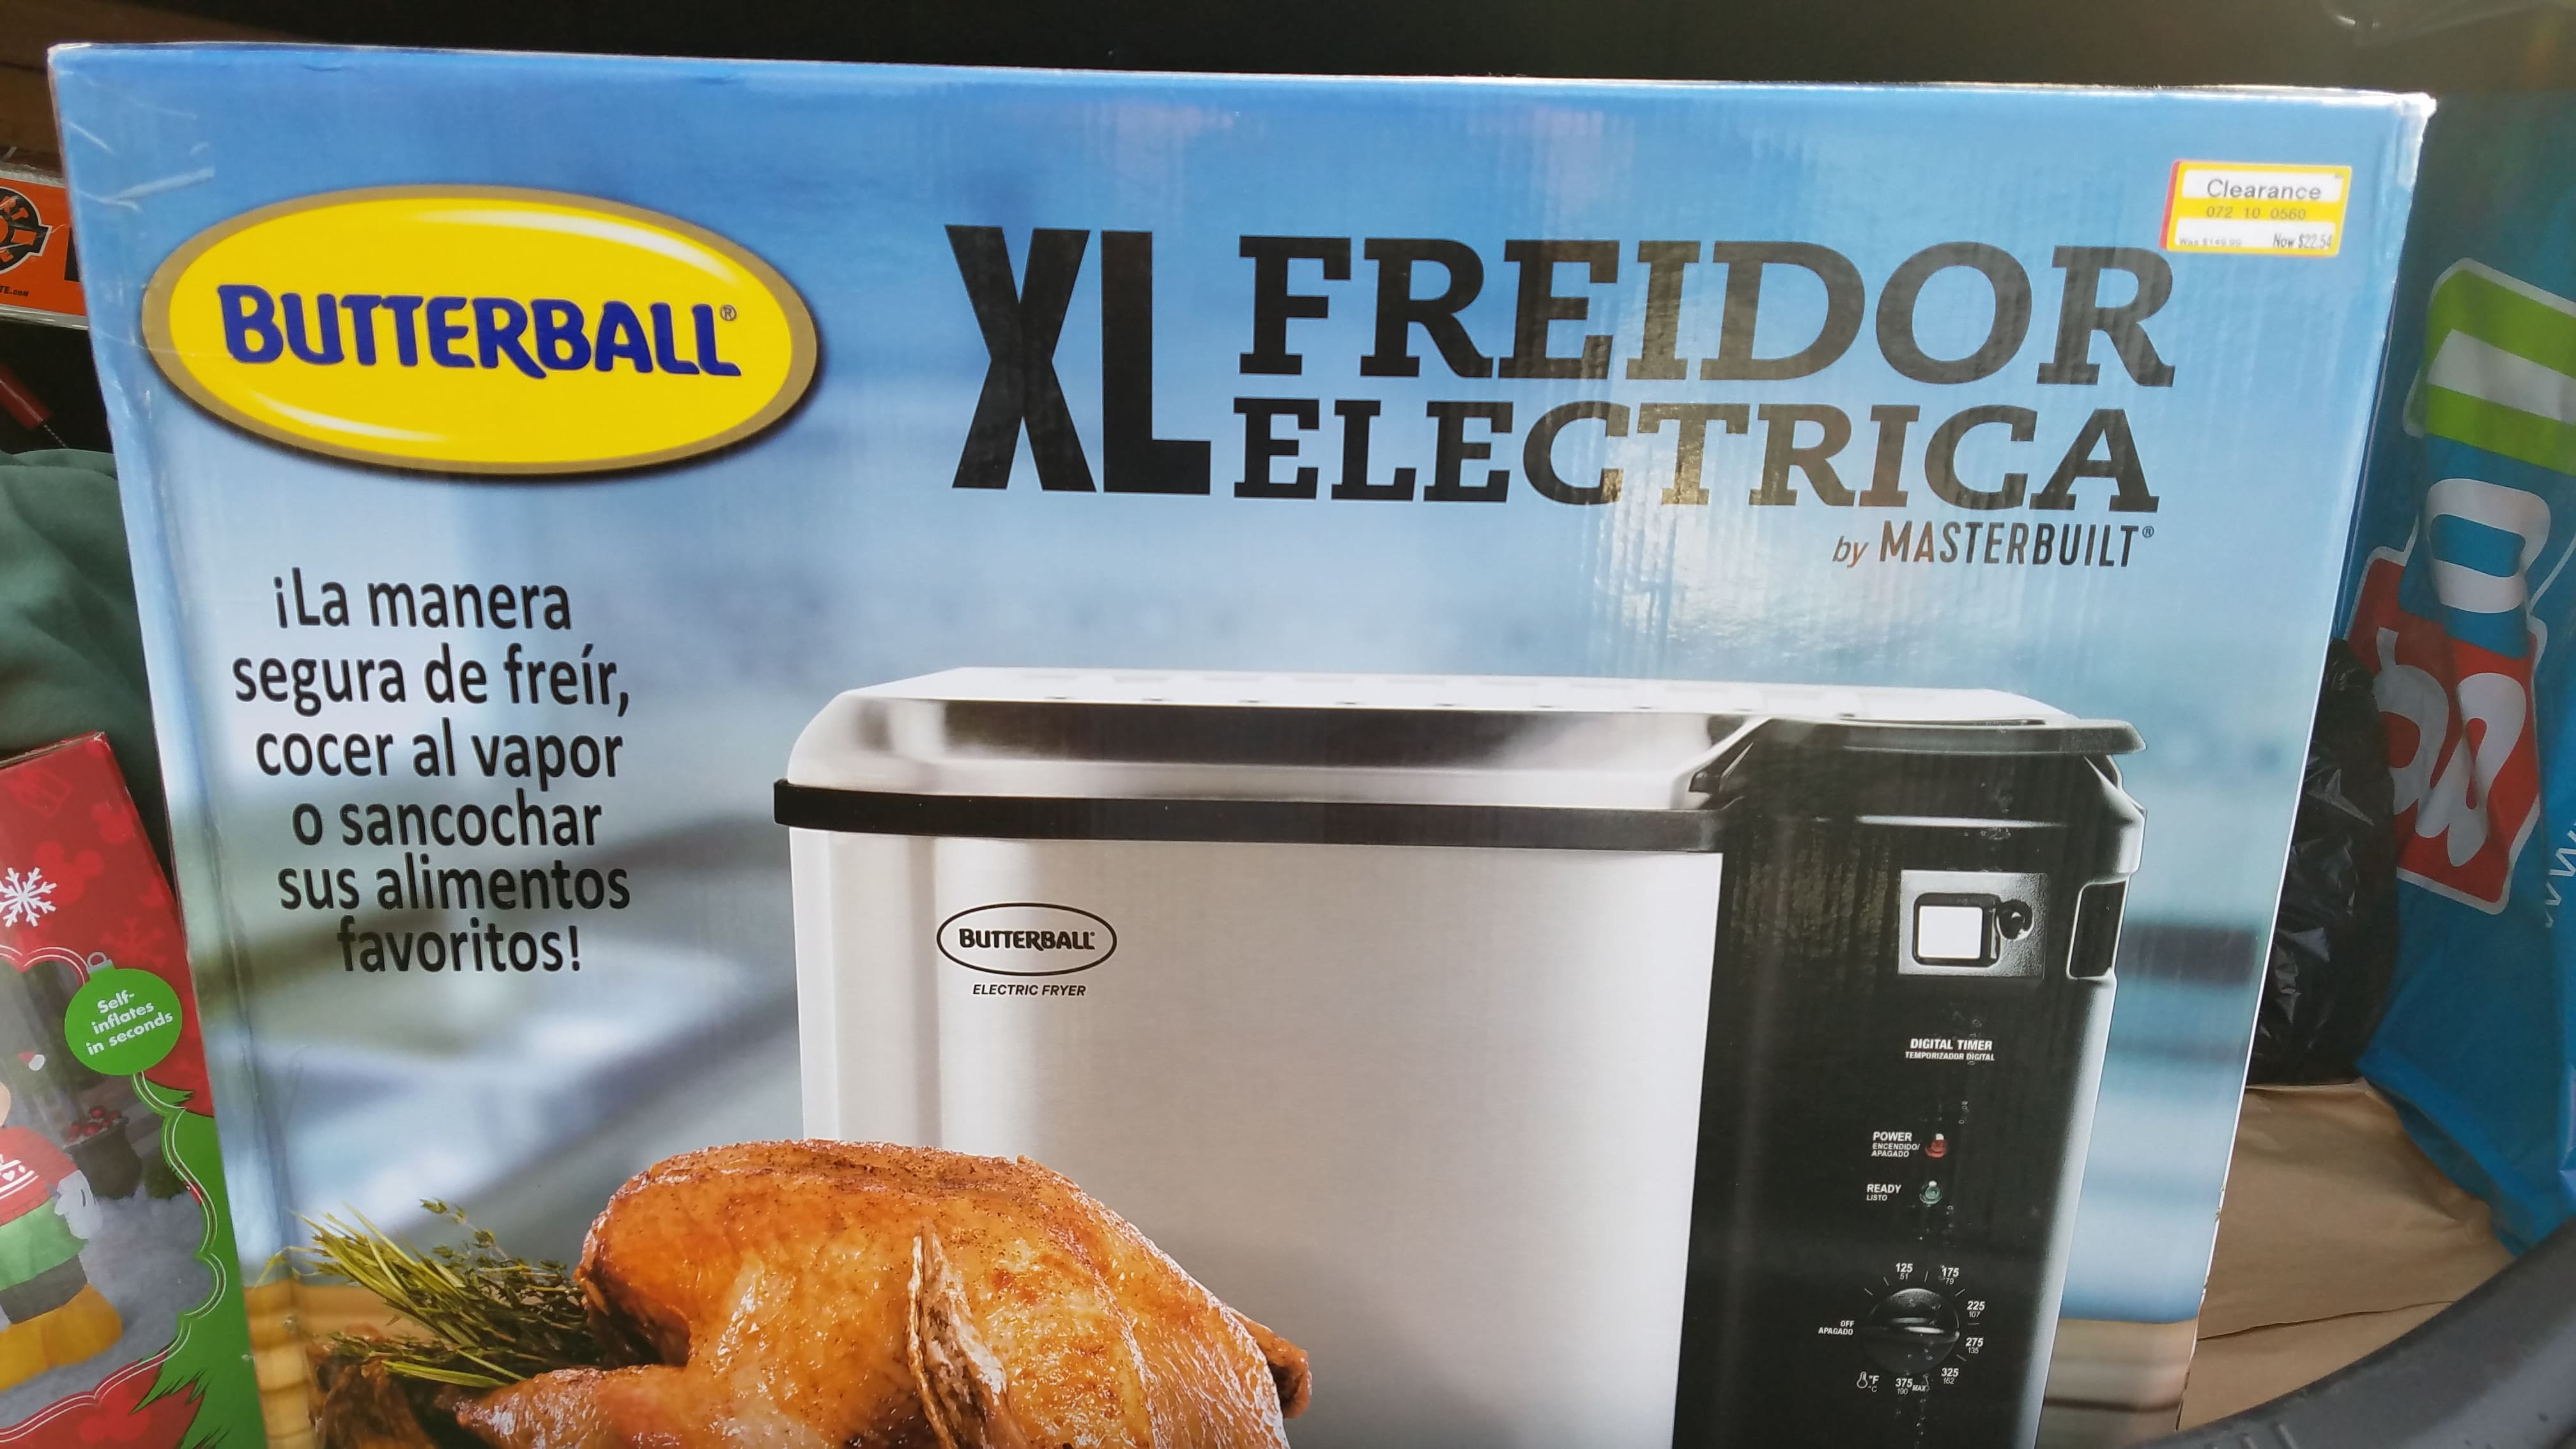 Target - Butterball XL Electric Turkey Fryer - $22.54 - *HUGE YMMV*